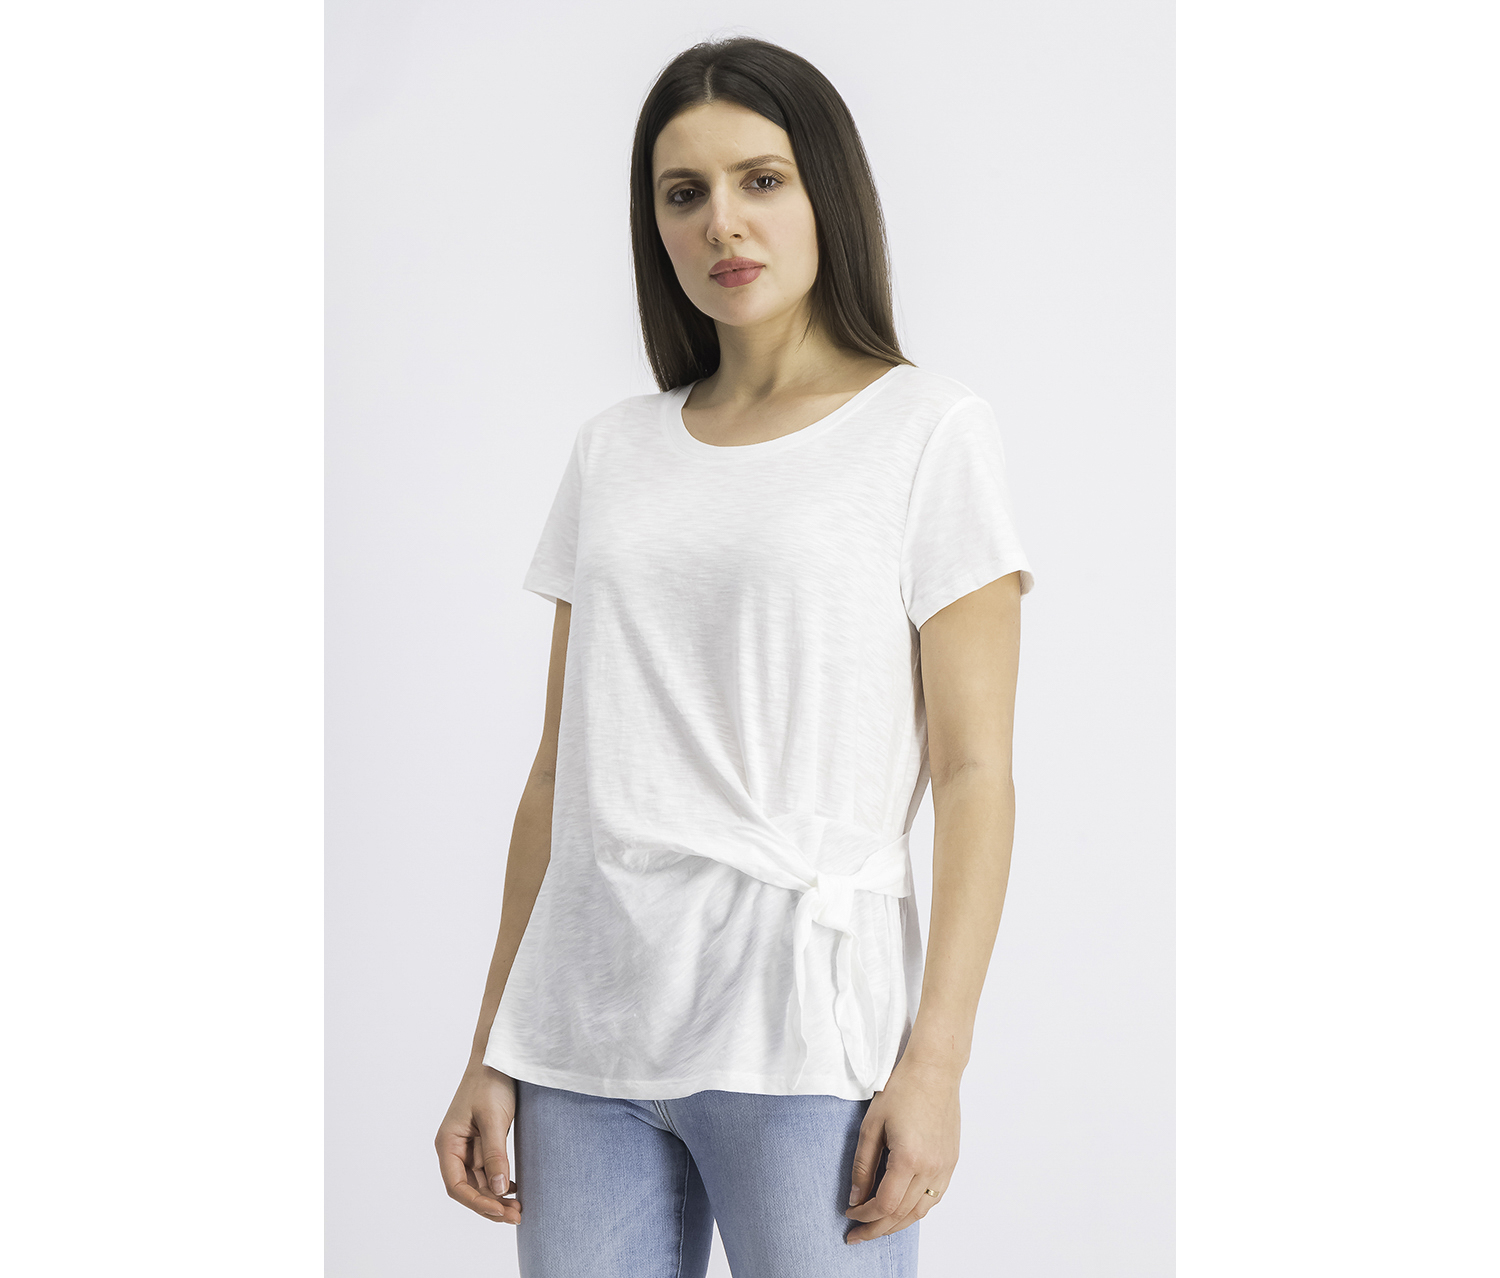 Women's Short Sleeves, Winter White